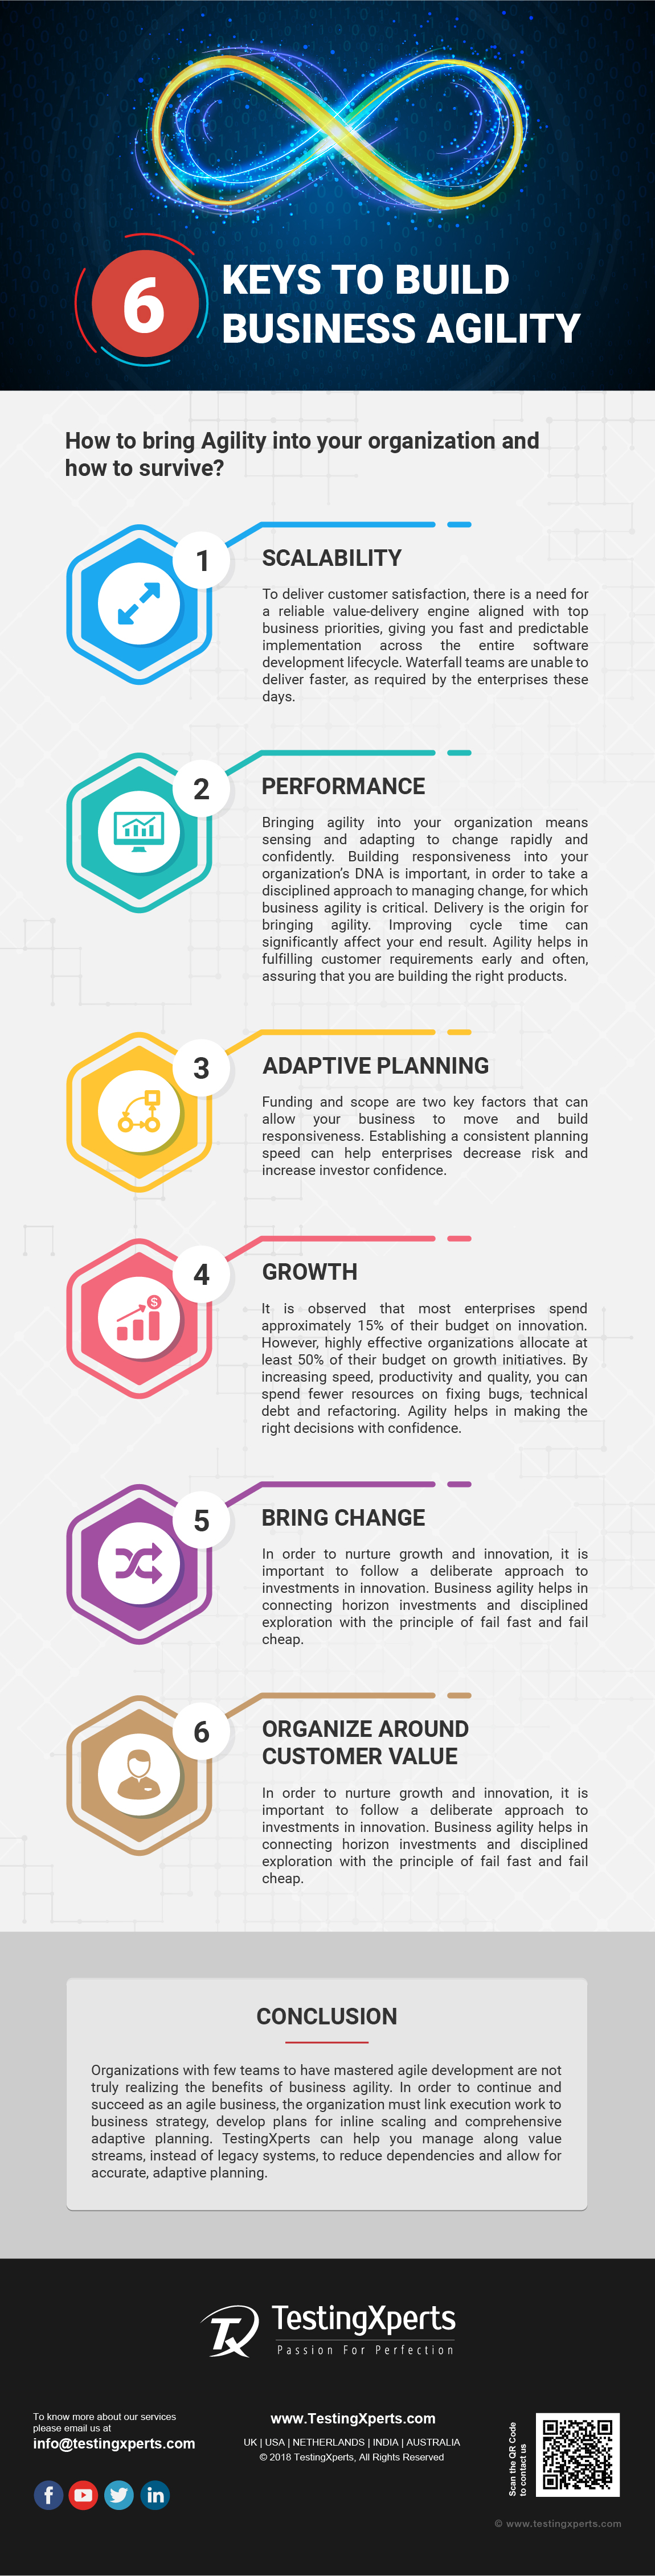 Software Automated Testing Services – Must for Business Agility (Infographic)